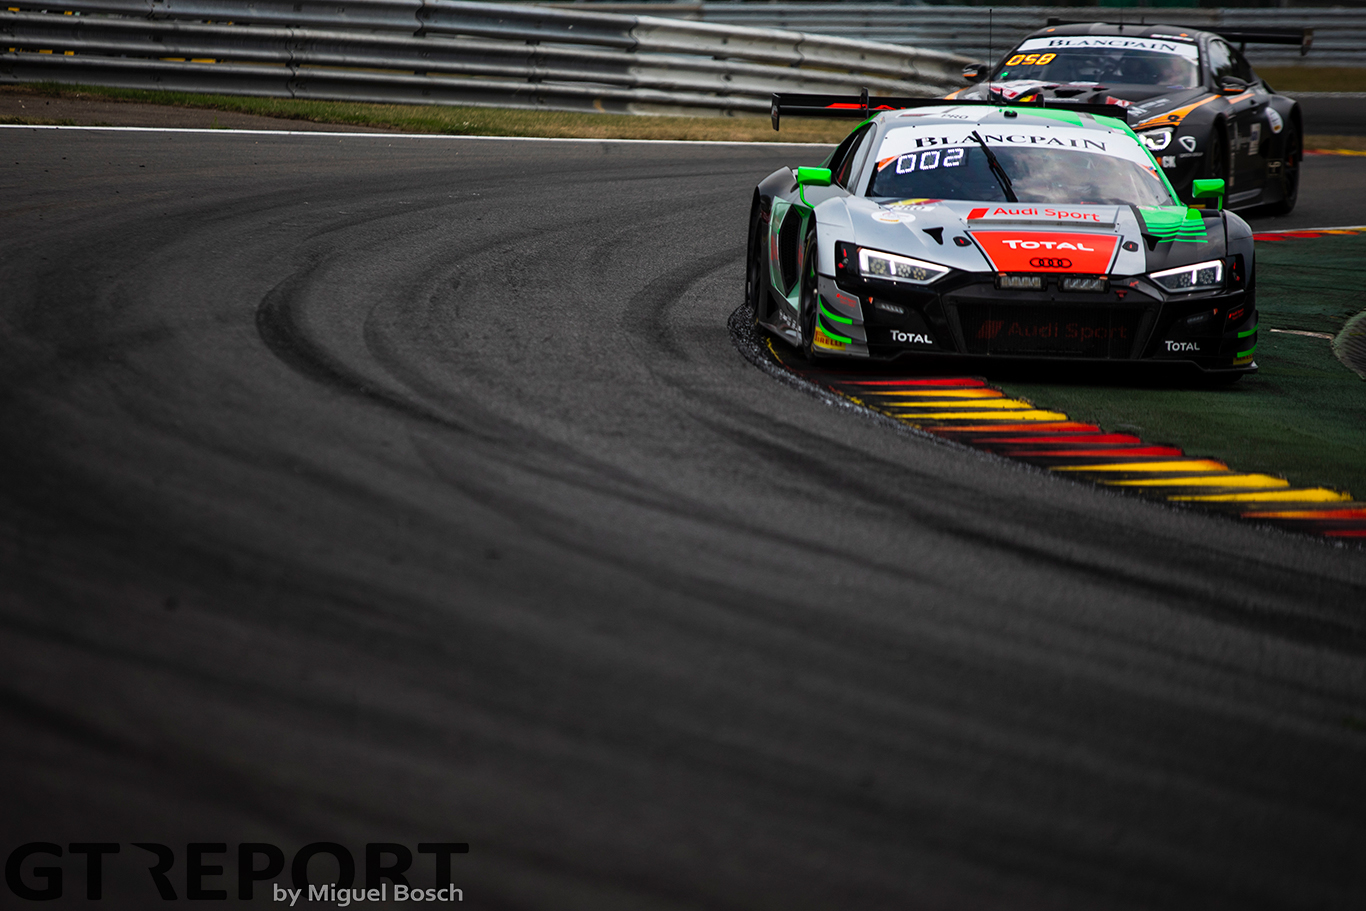 Spa 24 Hours: WRT leads into the final three hours